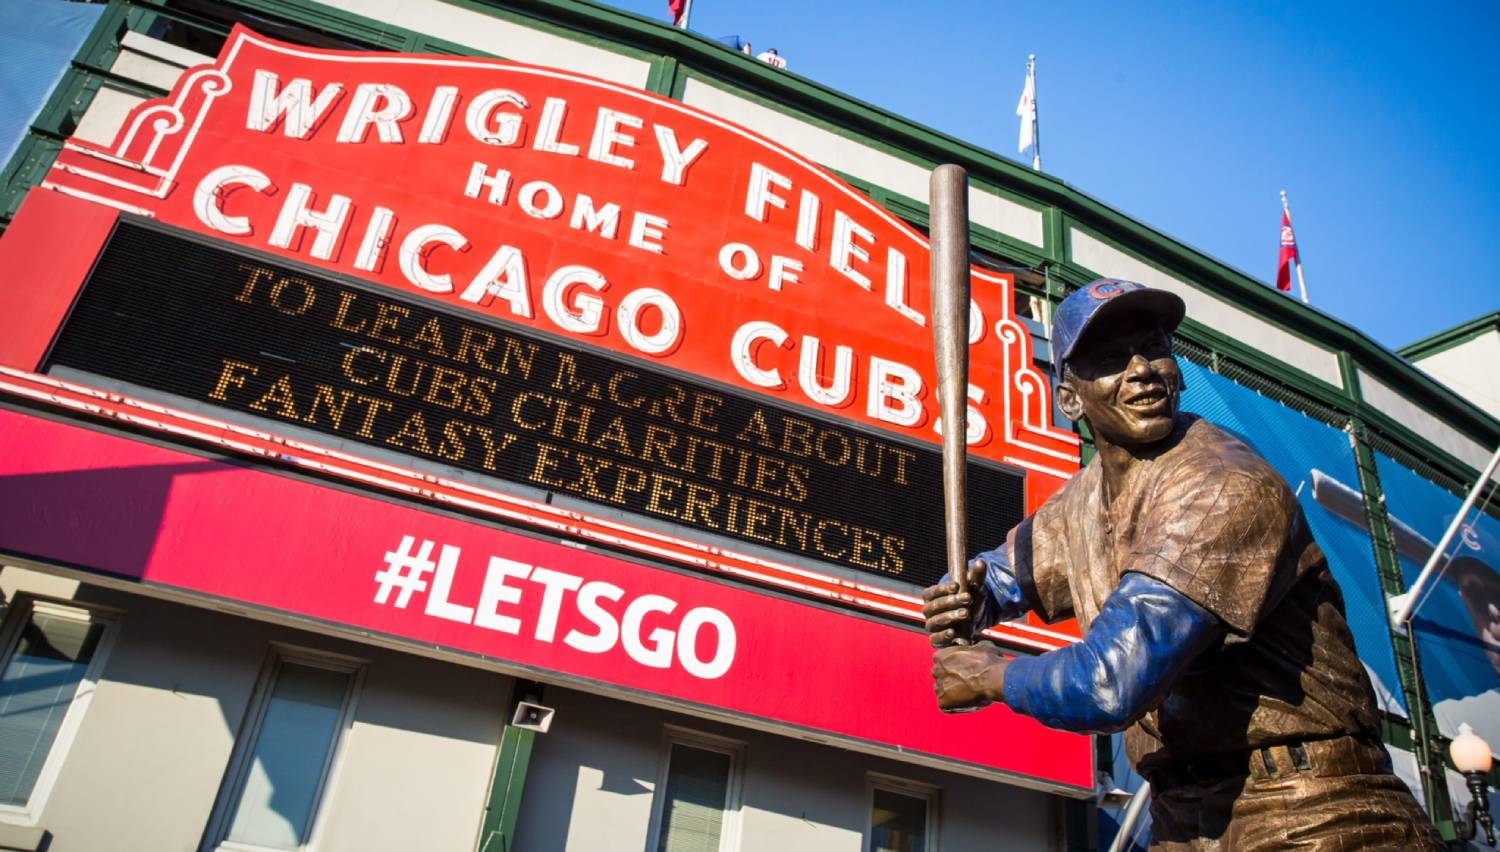 Wrigley Field - Things To Do In Chicago